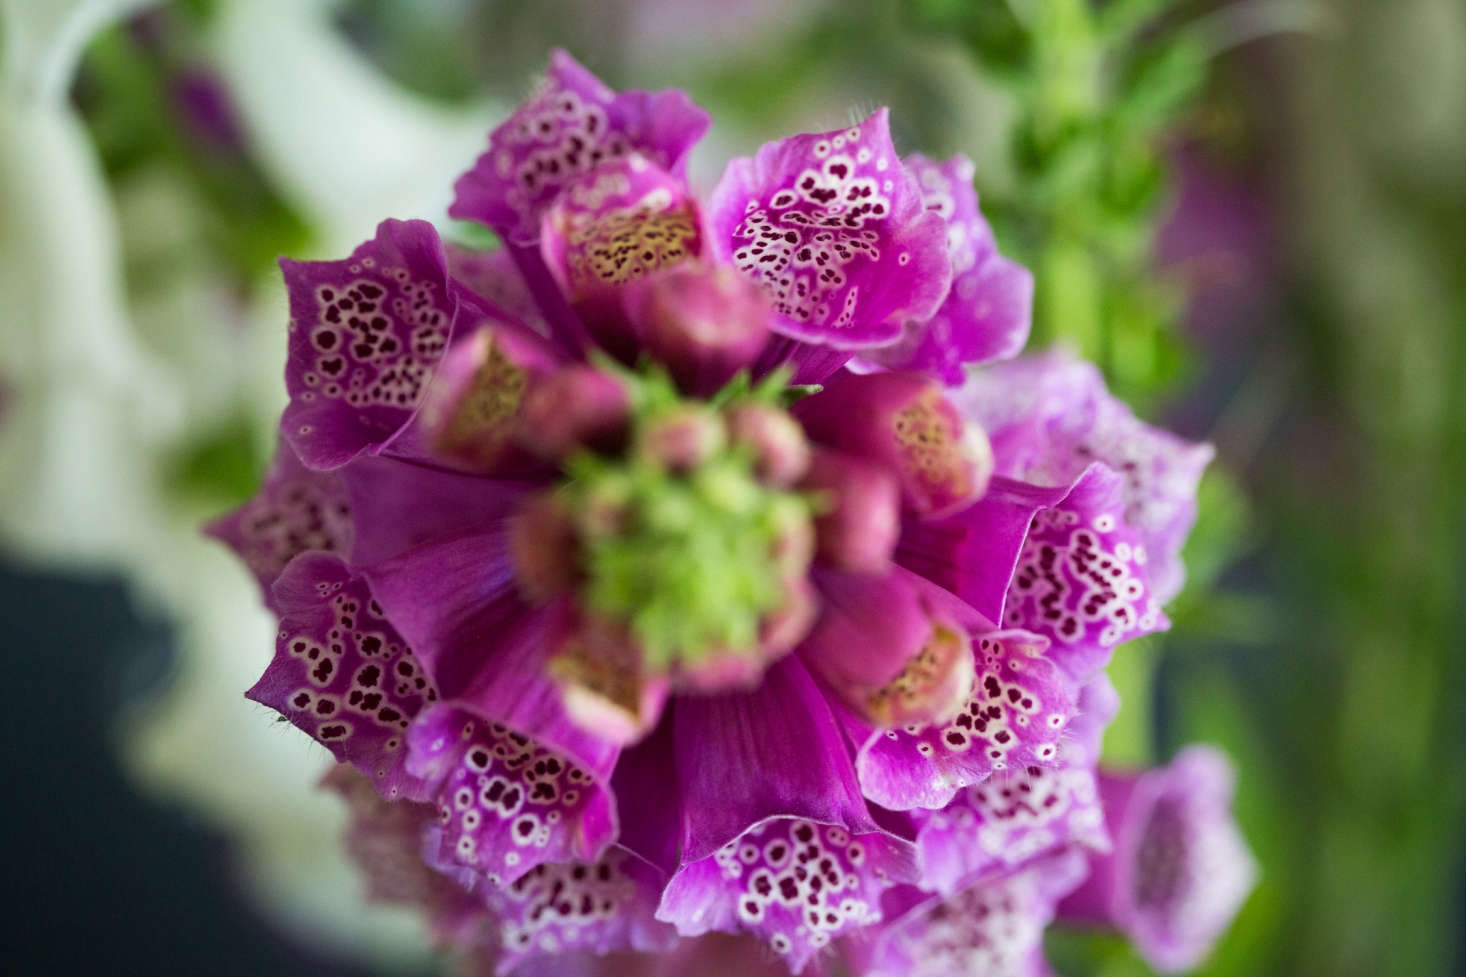 One of the best reasons to cut flowers is it gives you the opportunity to closelyexamine them. I must have walked past this magenta foxglove in the garden a hundred times. But as I inspected the speckled interior of each velvetyflower bell, I wondered if I ever haveseen anything even half asmagical?